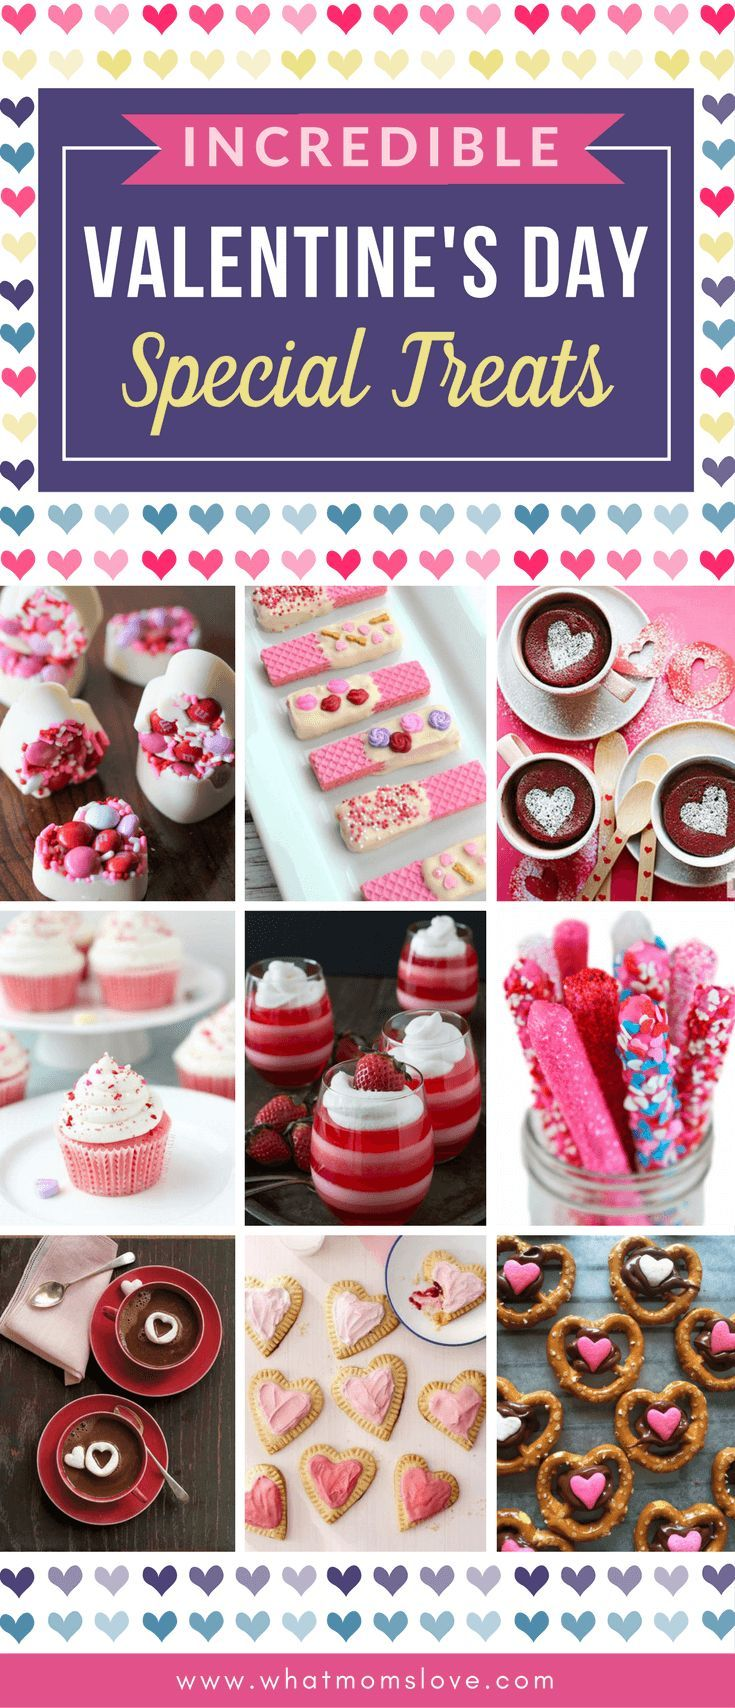 Valentines Day Treat Ideas for Kids | Fun and easy treats to make for school and classroom parties, or to celebrate with friends and family at home. Simple recipes with hearts, candy, and cookie cutters.